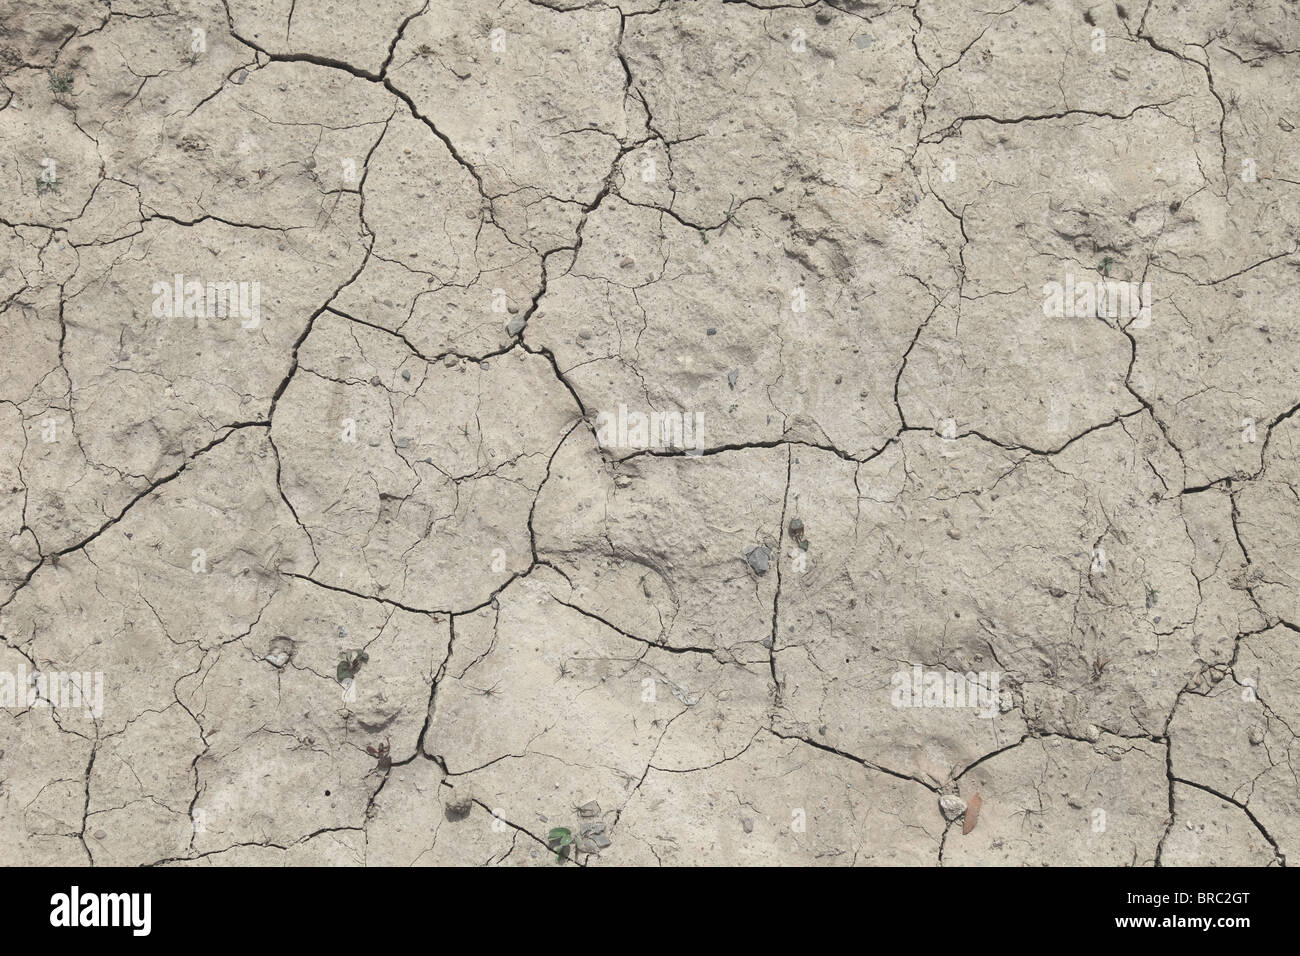 Background texture of a flawed dried out ground. Stock Photo